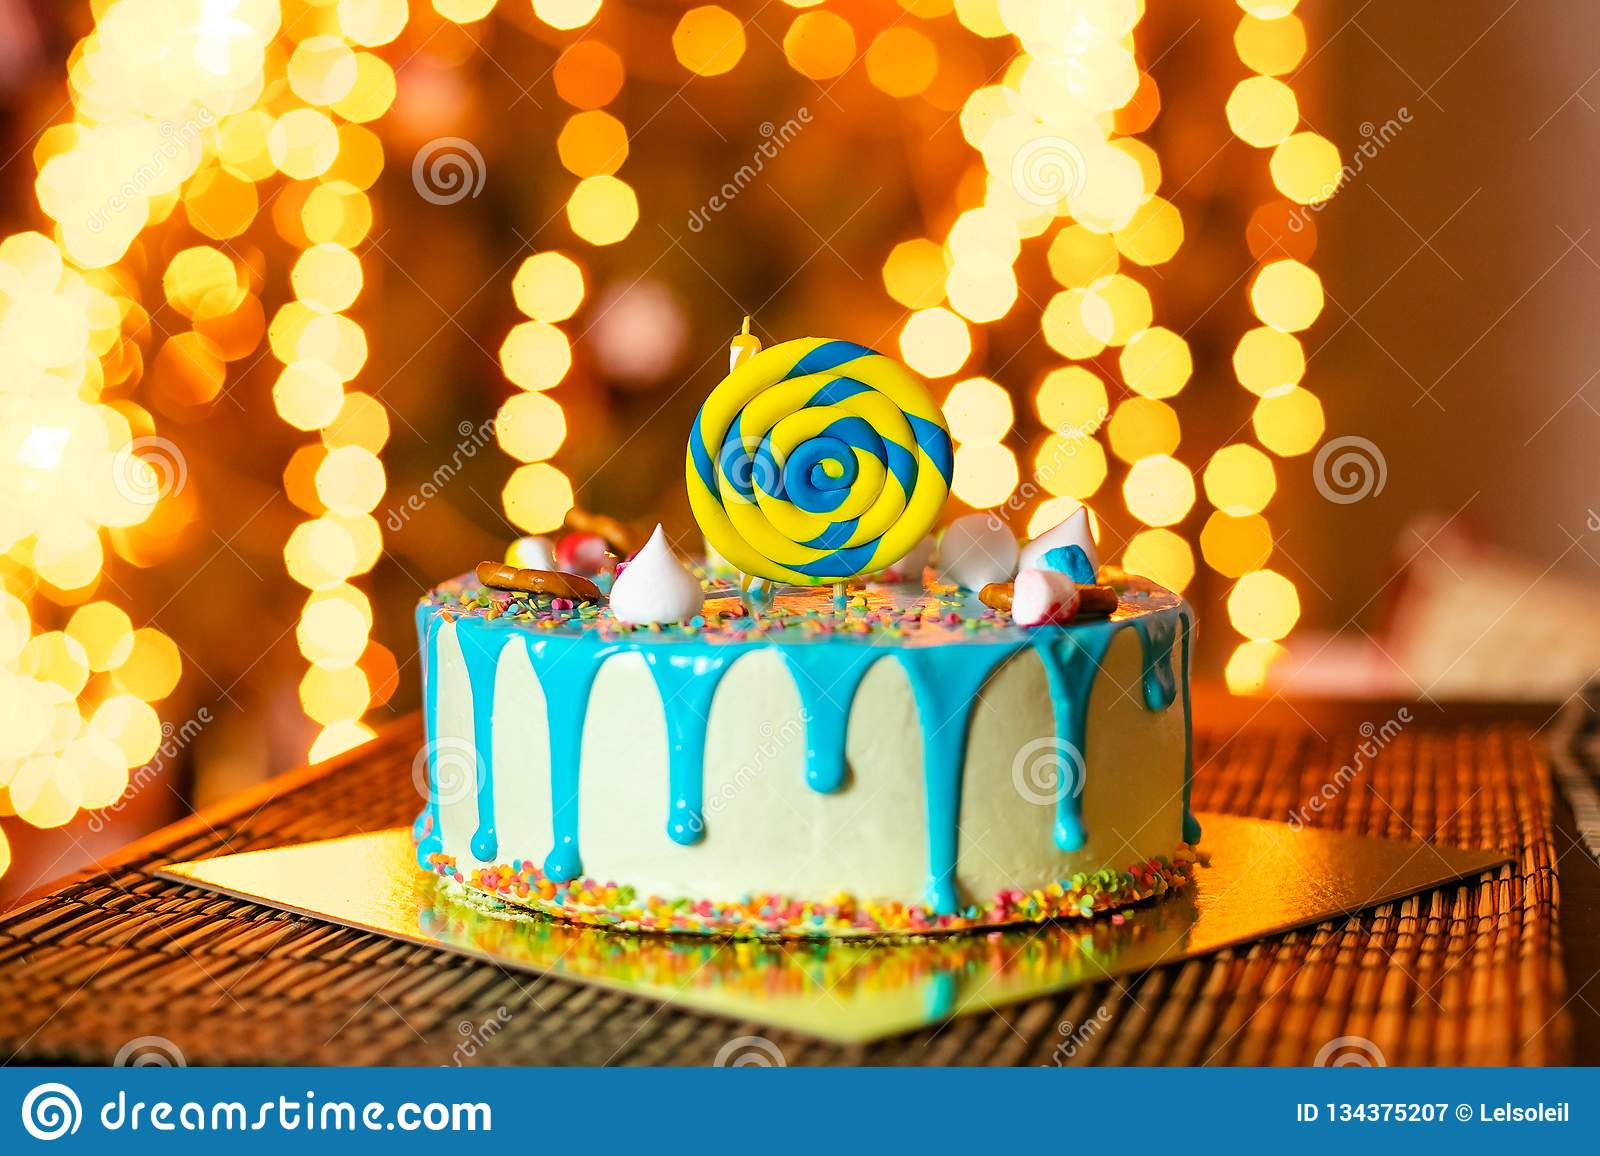 Birthday white cake with sweets and candle for little baby boy and decorations for cake smash